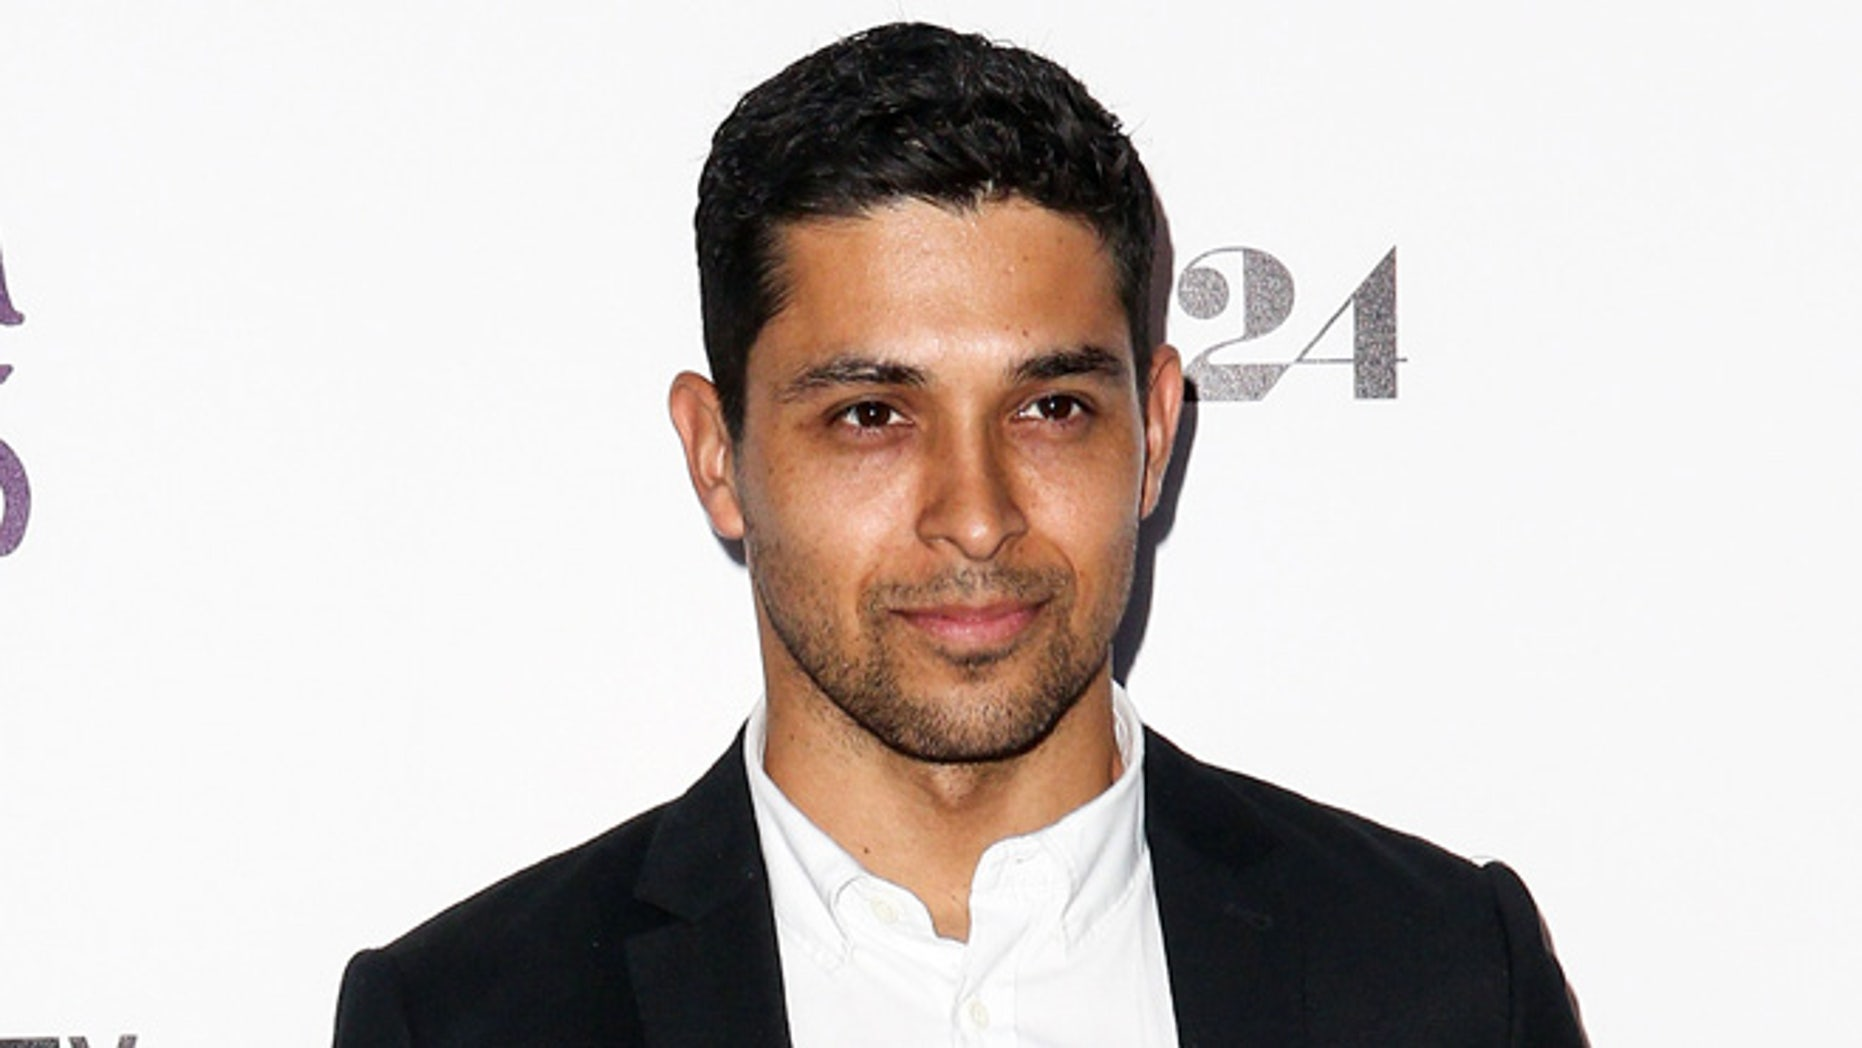 """FILE - In this April 12, 2016 file photo, Wilmer Valderrama attends the LA Premiere of """"The Adderall Diaries""""  in Los Angeles. Valderrama is joining the cast of """"NCIS,"""" as a series regular. (Photo by John Salangsang/Invision/AP, File)"""